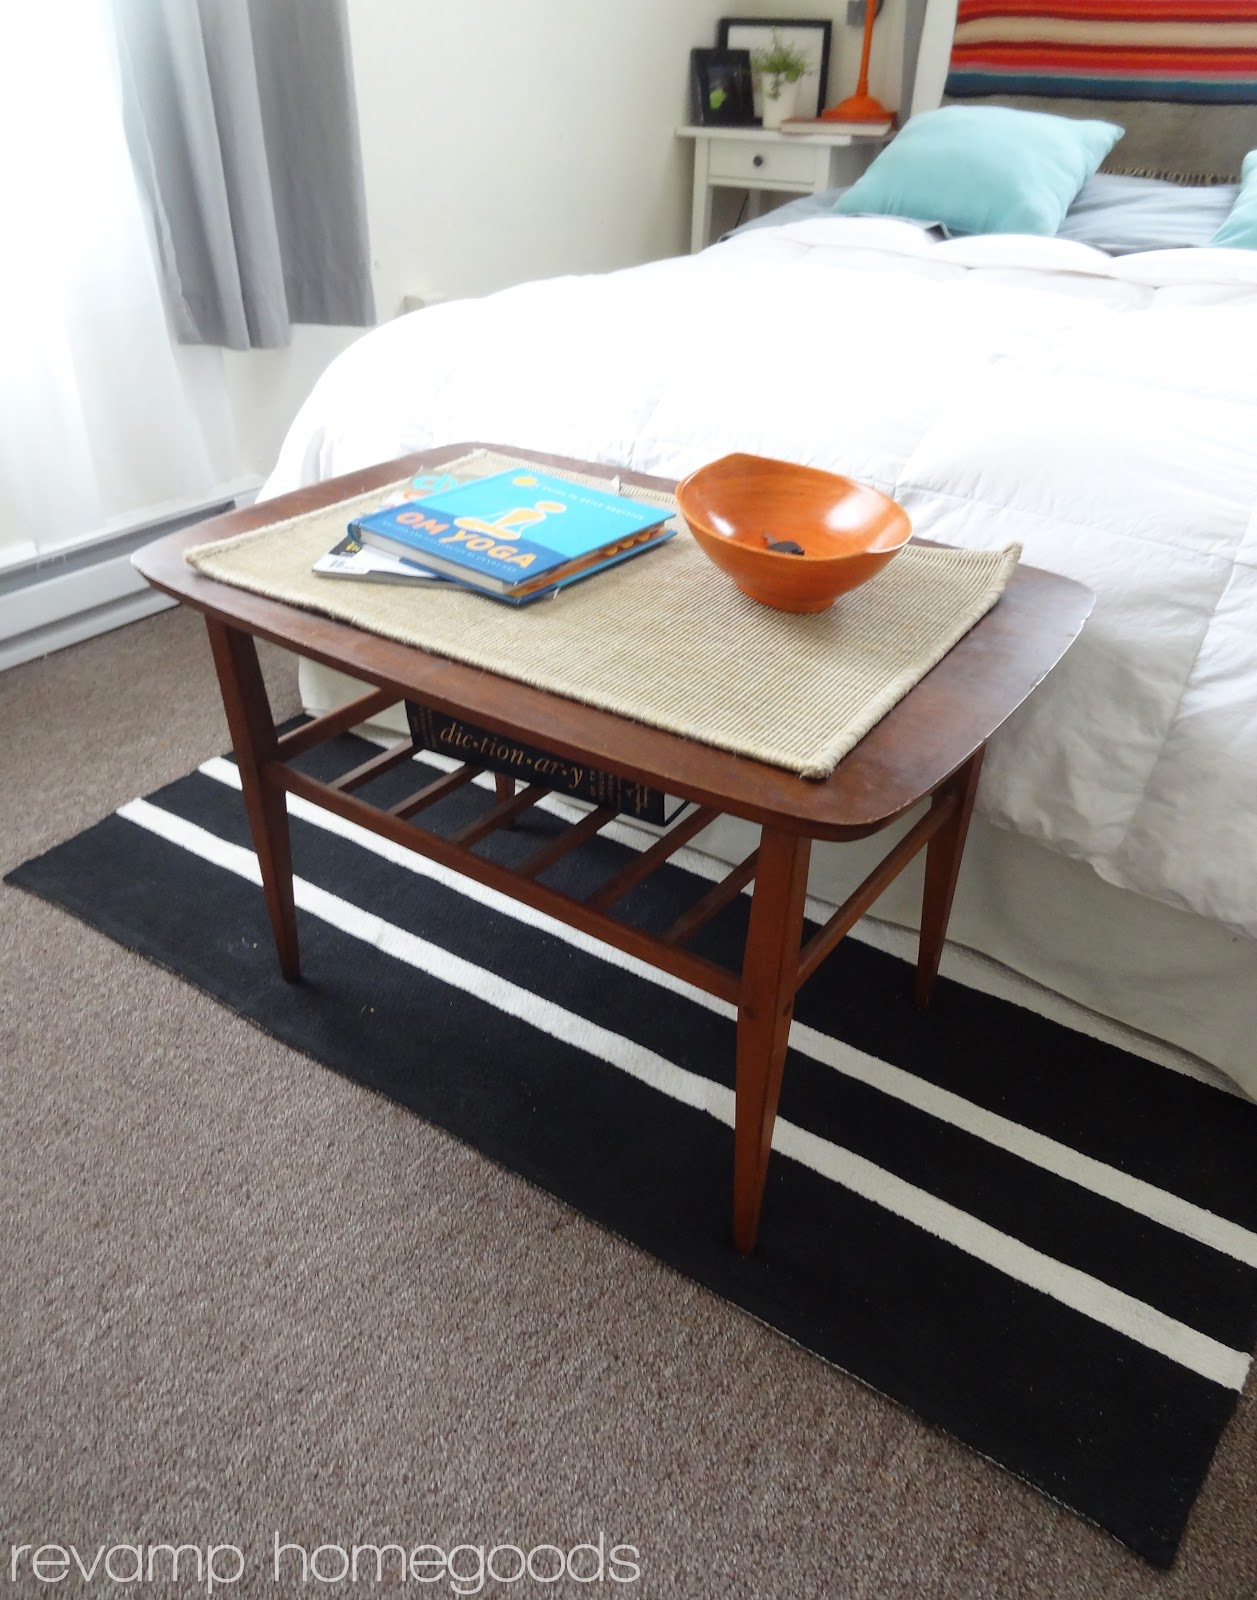 DIY How To Paint a Rug